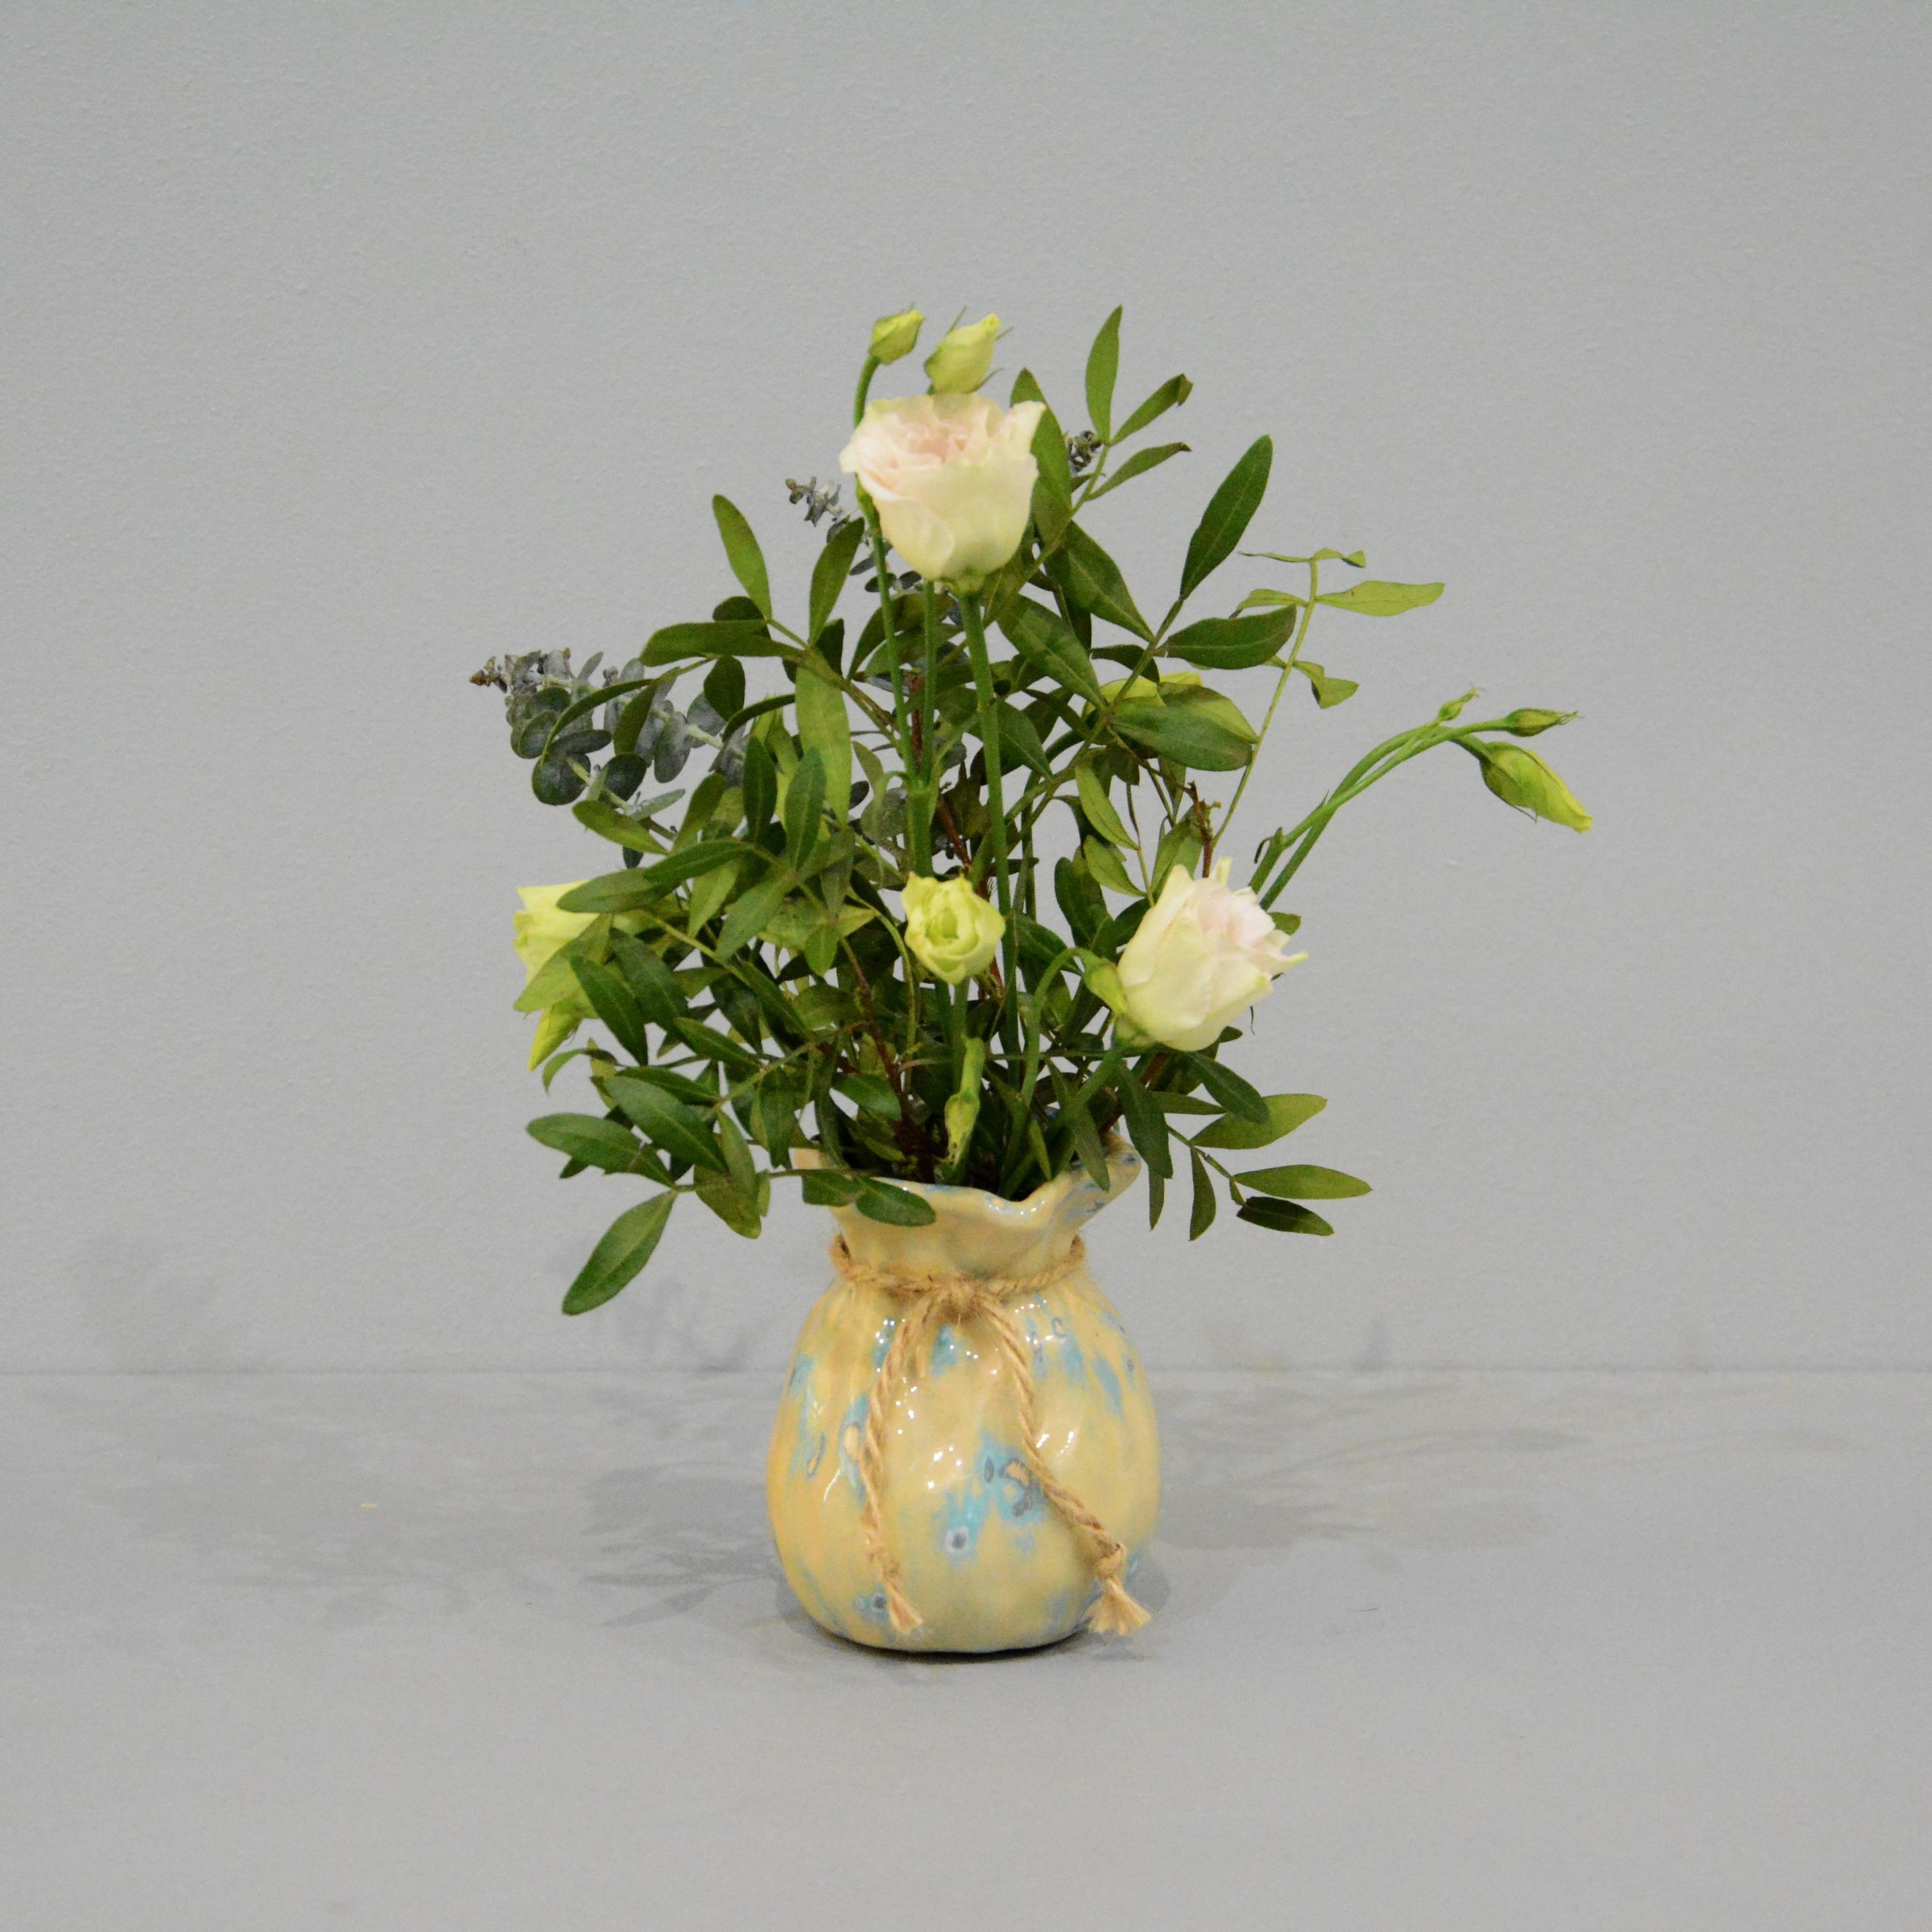 Candle vase «Beige Bagful», height - 9 cm, color - beige. Photo 1413-3840-3840.